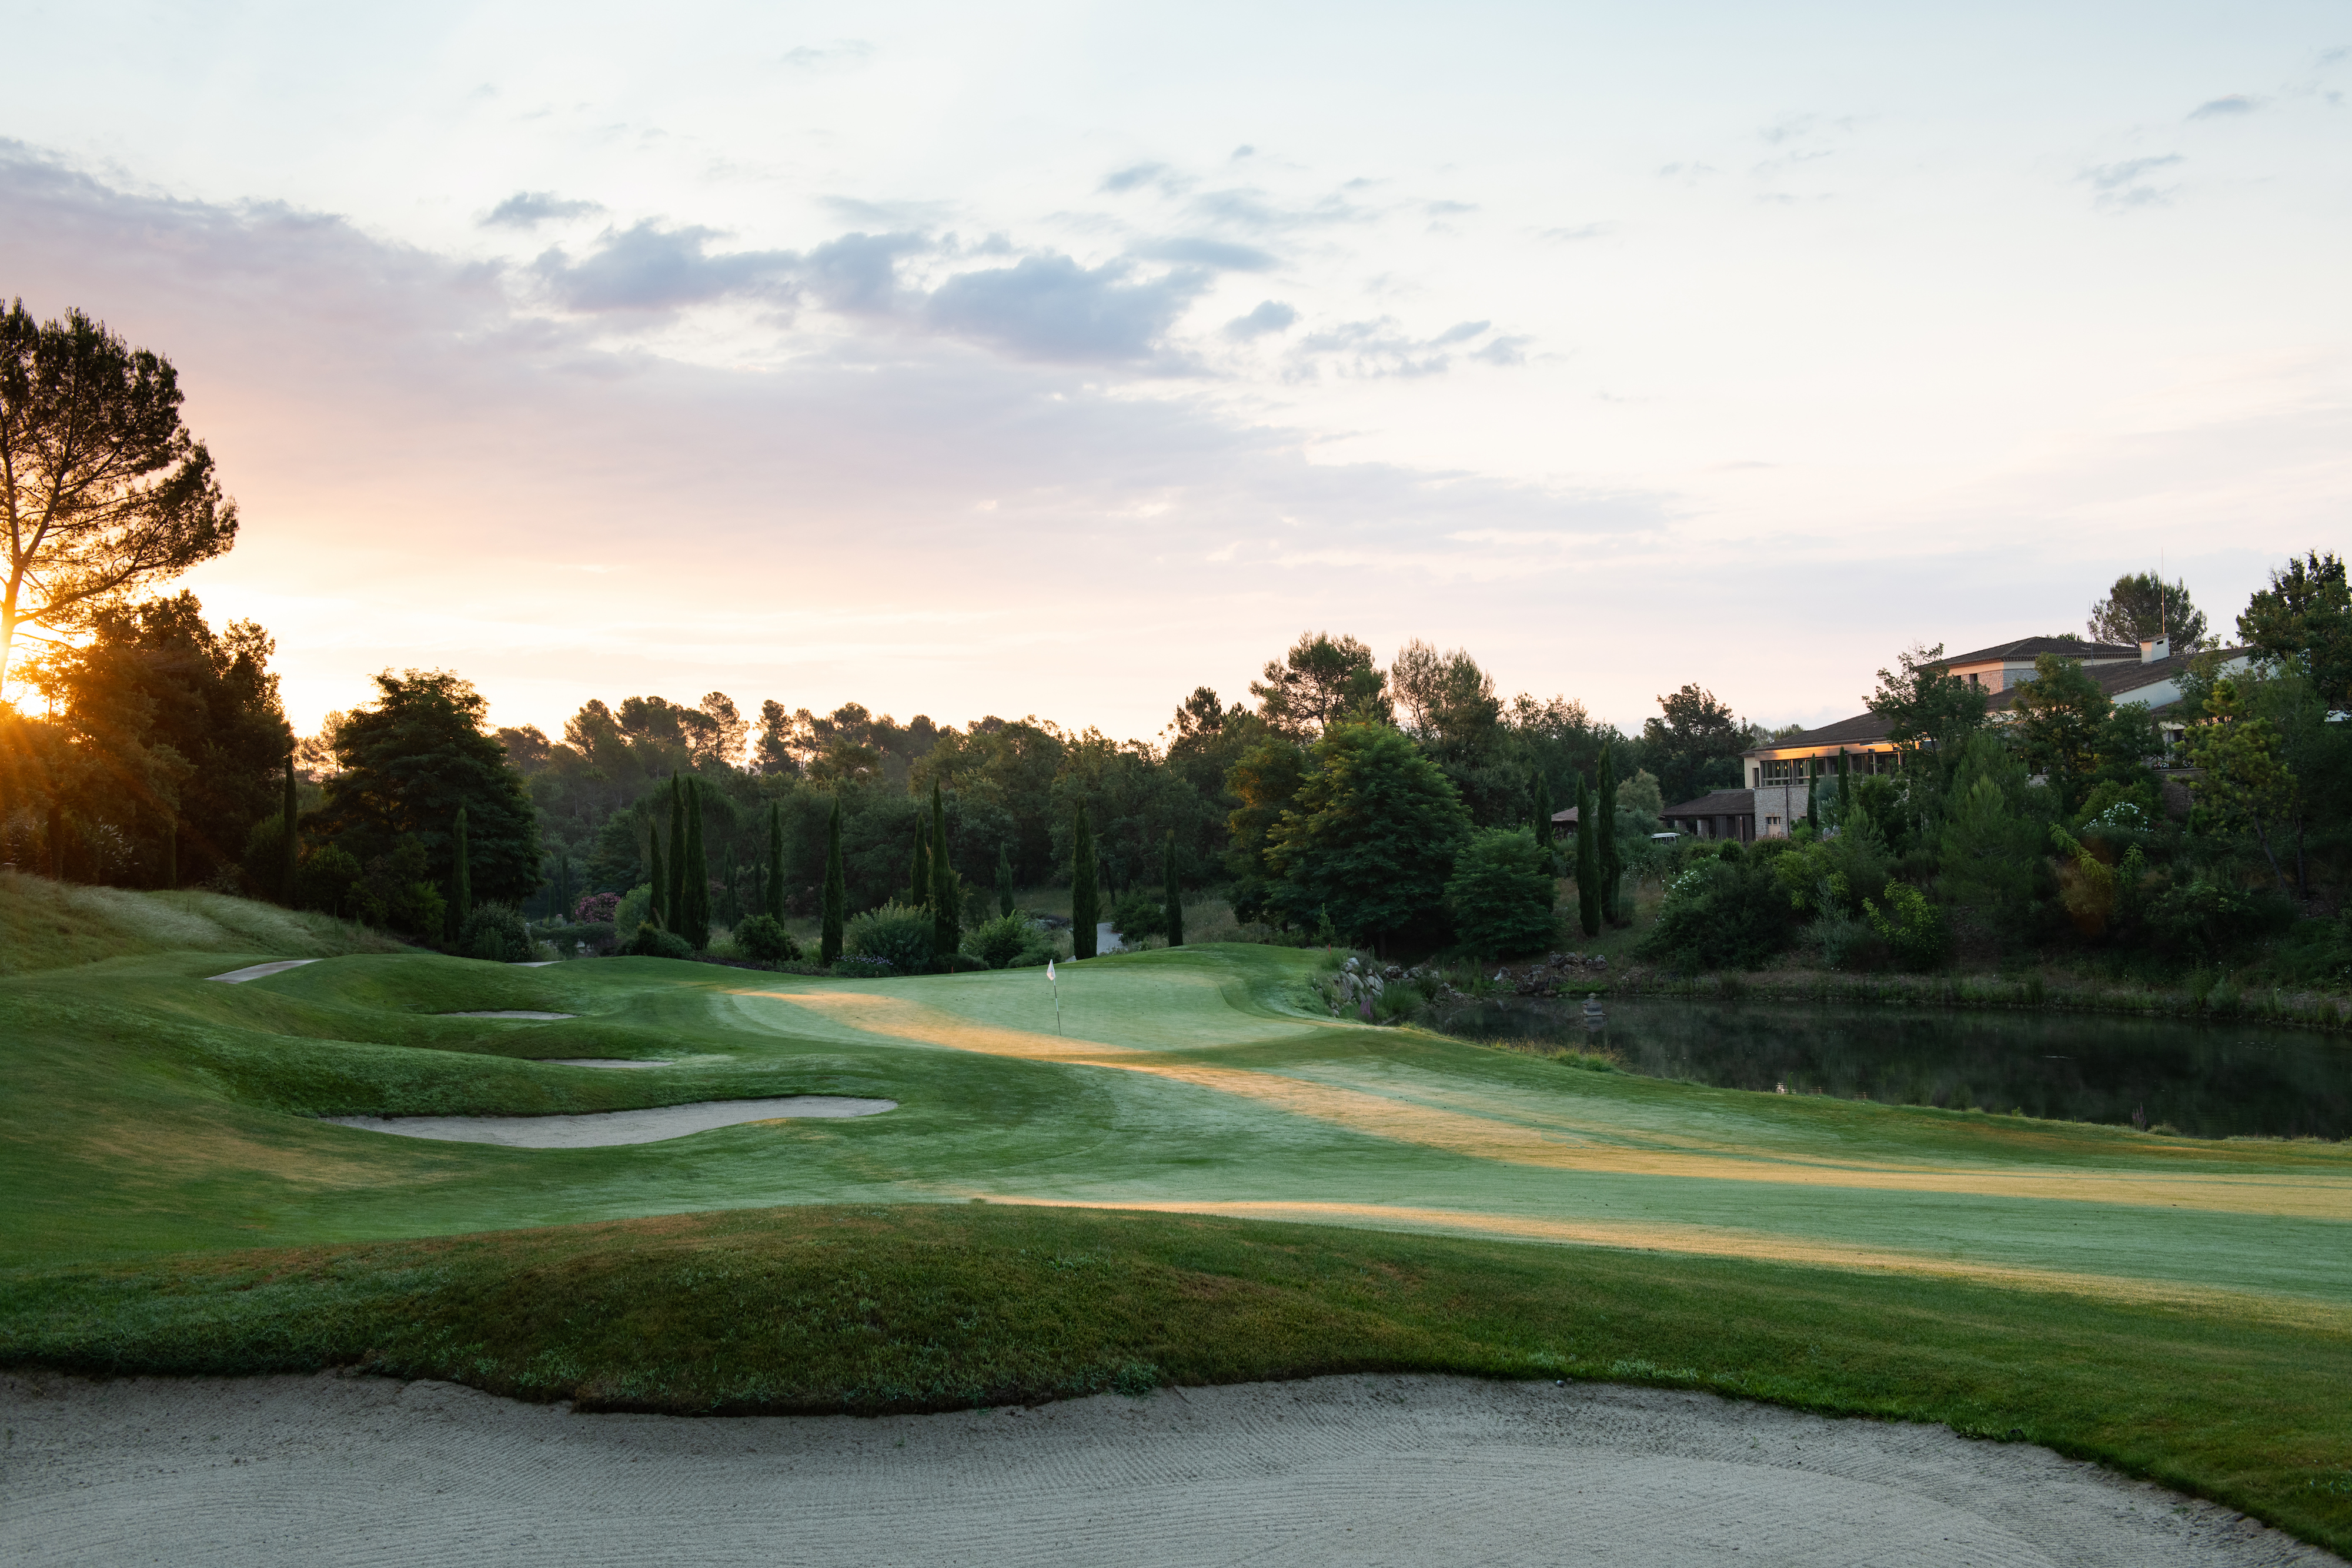 Overview of golf course named Terre Blanche Hotel Spa Golf Resort - Le Riou